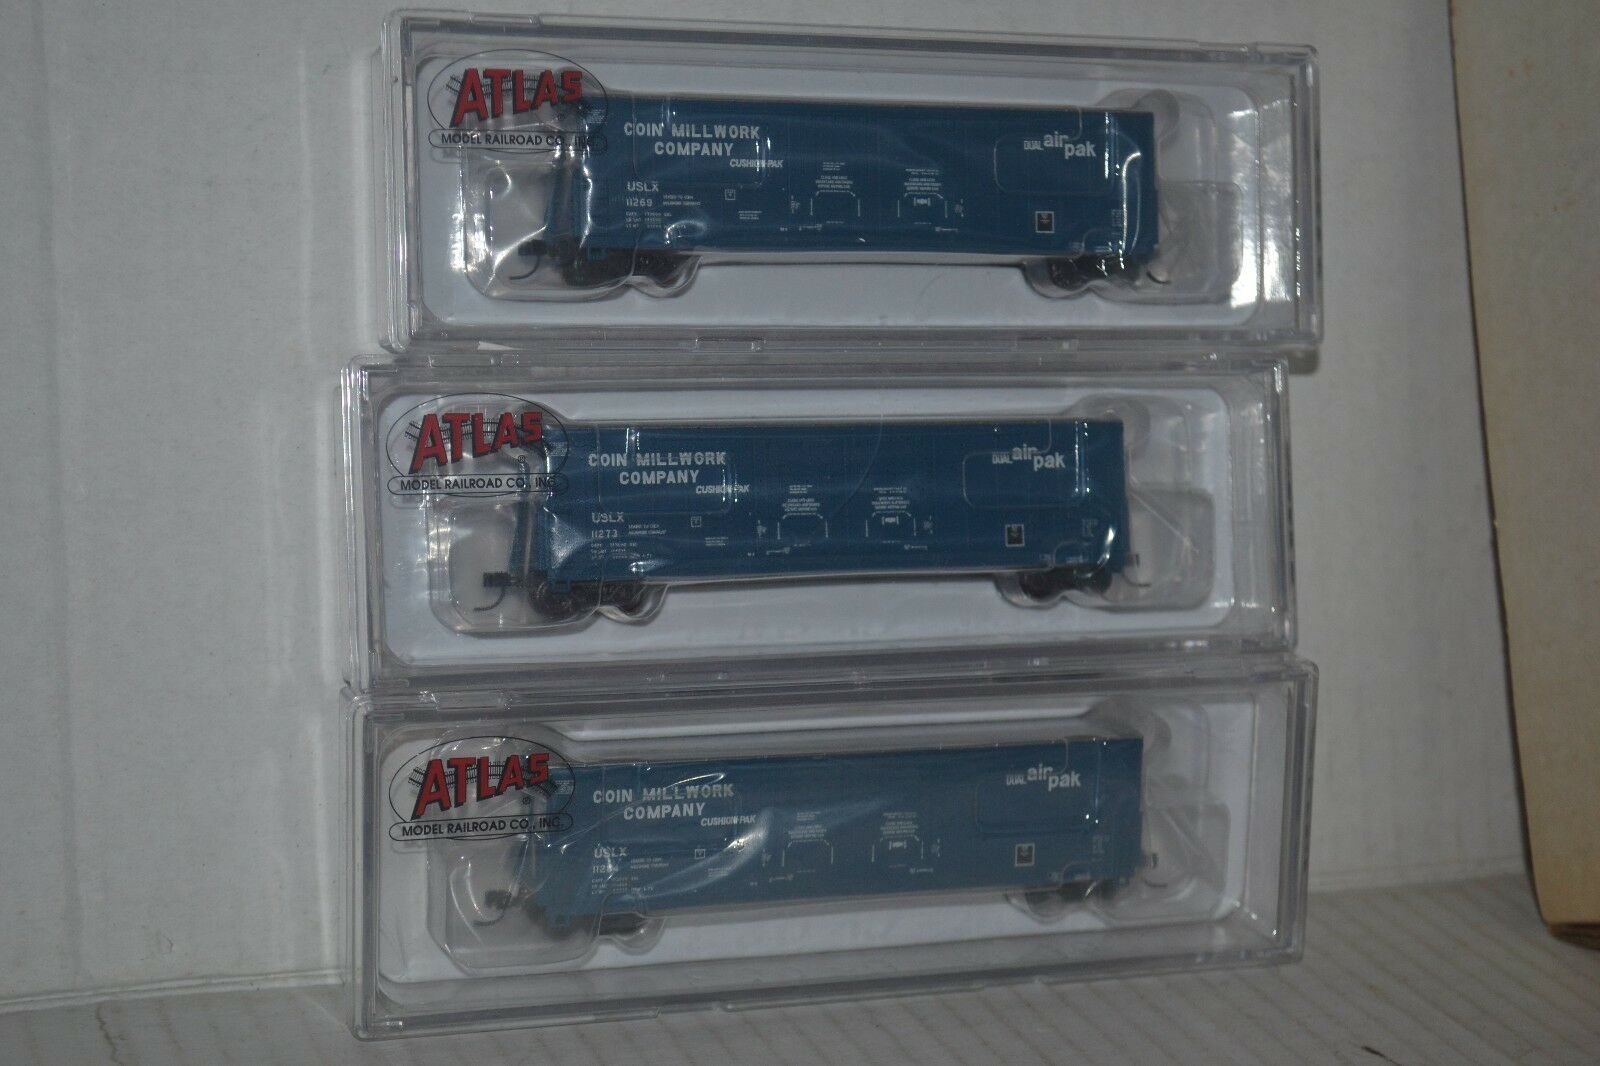 3 Atlas Coin Millwork USLX 53' Evans DPD  Box Car N scale